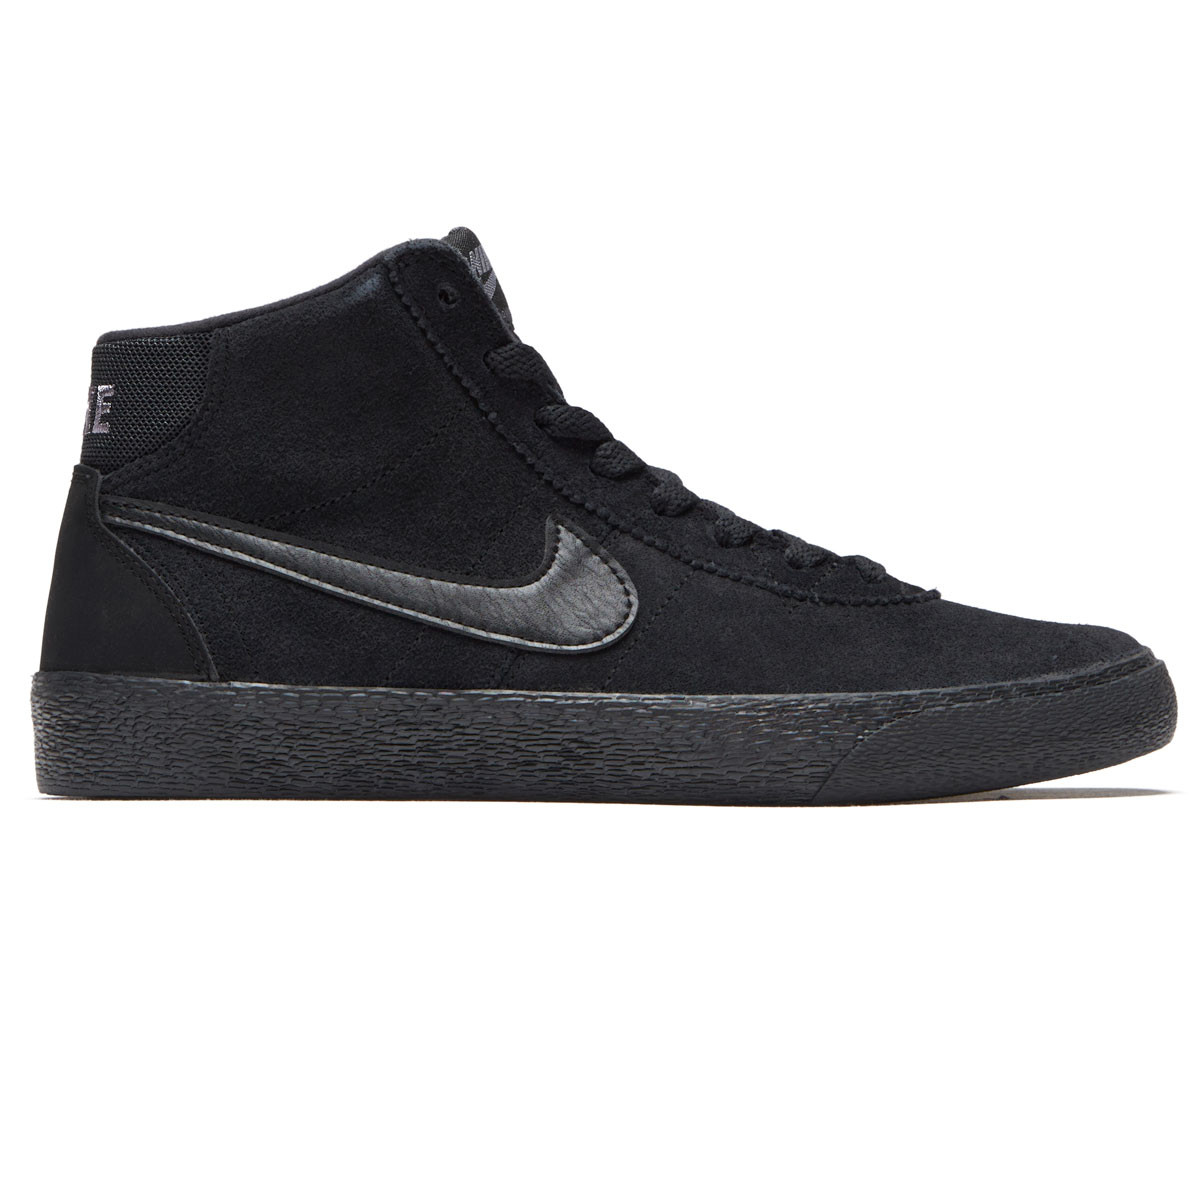 Nike SB Womens Bruin Hi Shoes - Black Black Gunsmoke - 6.0 64bc9bf04